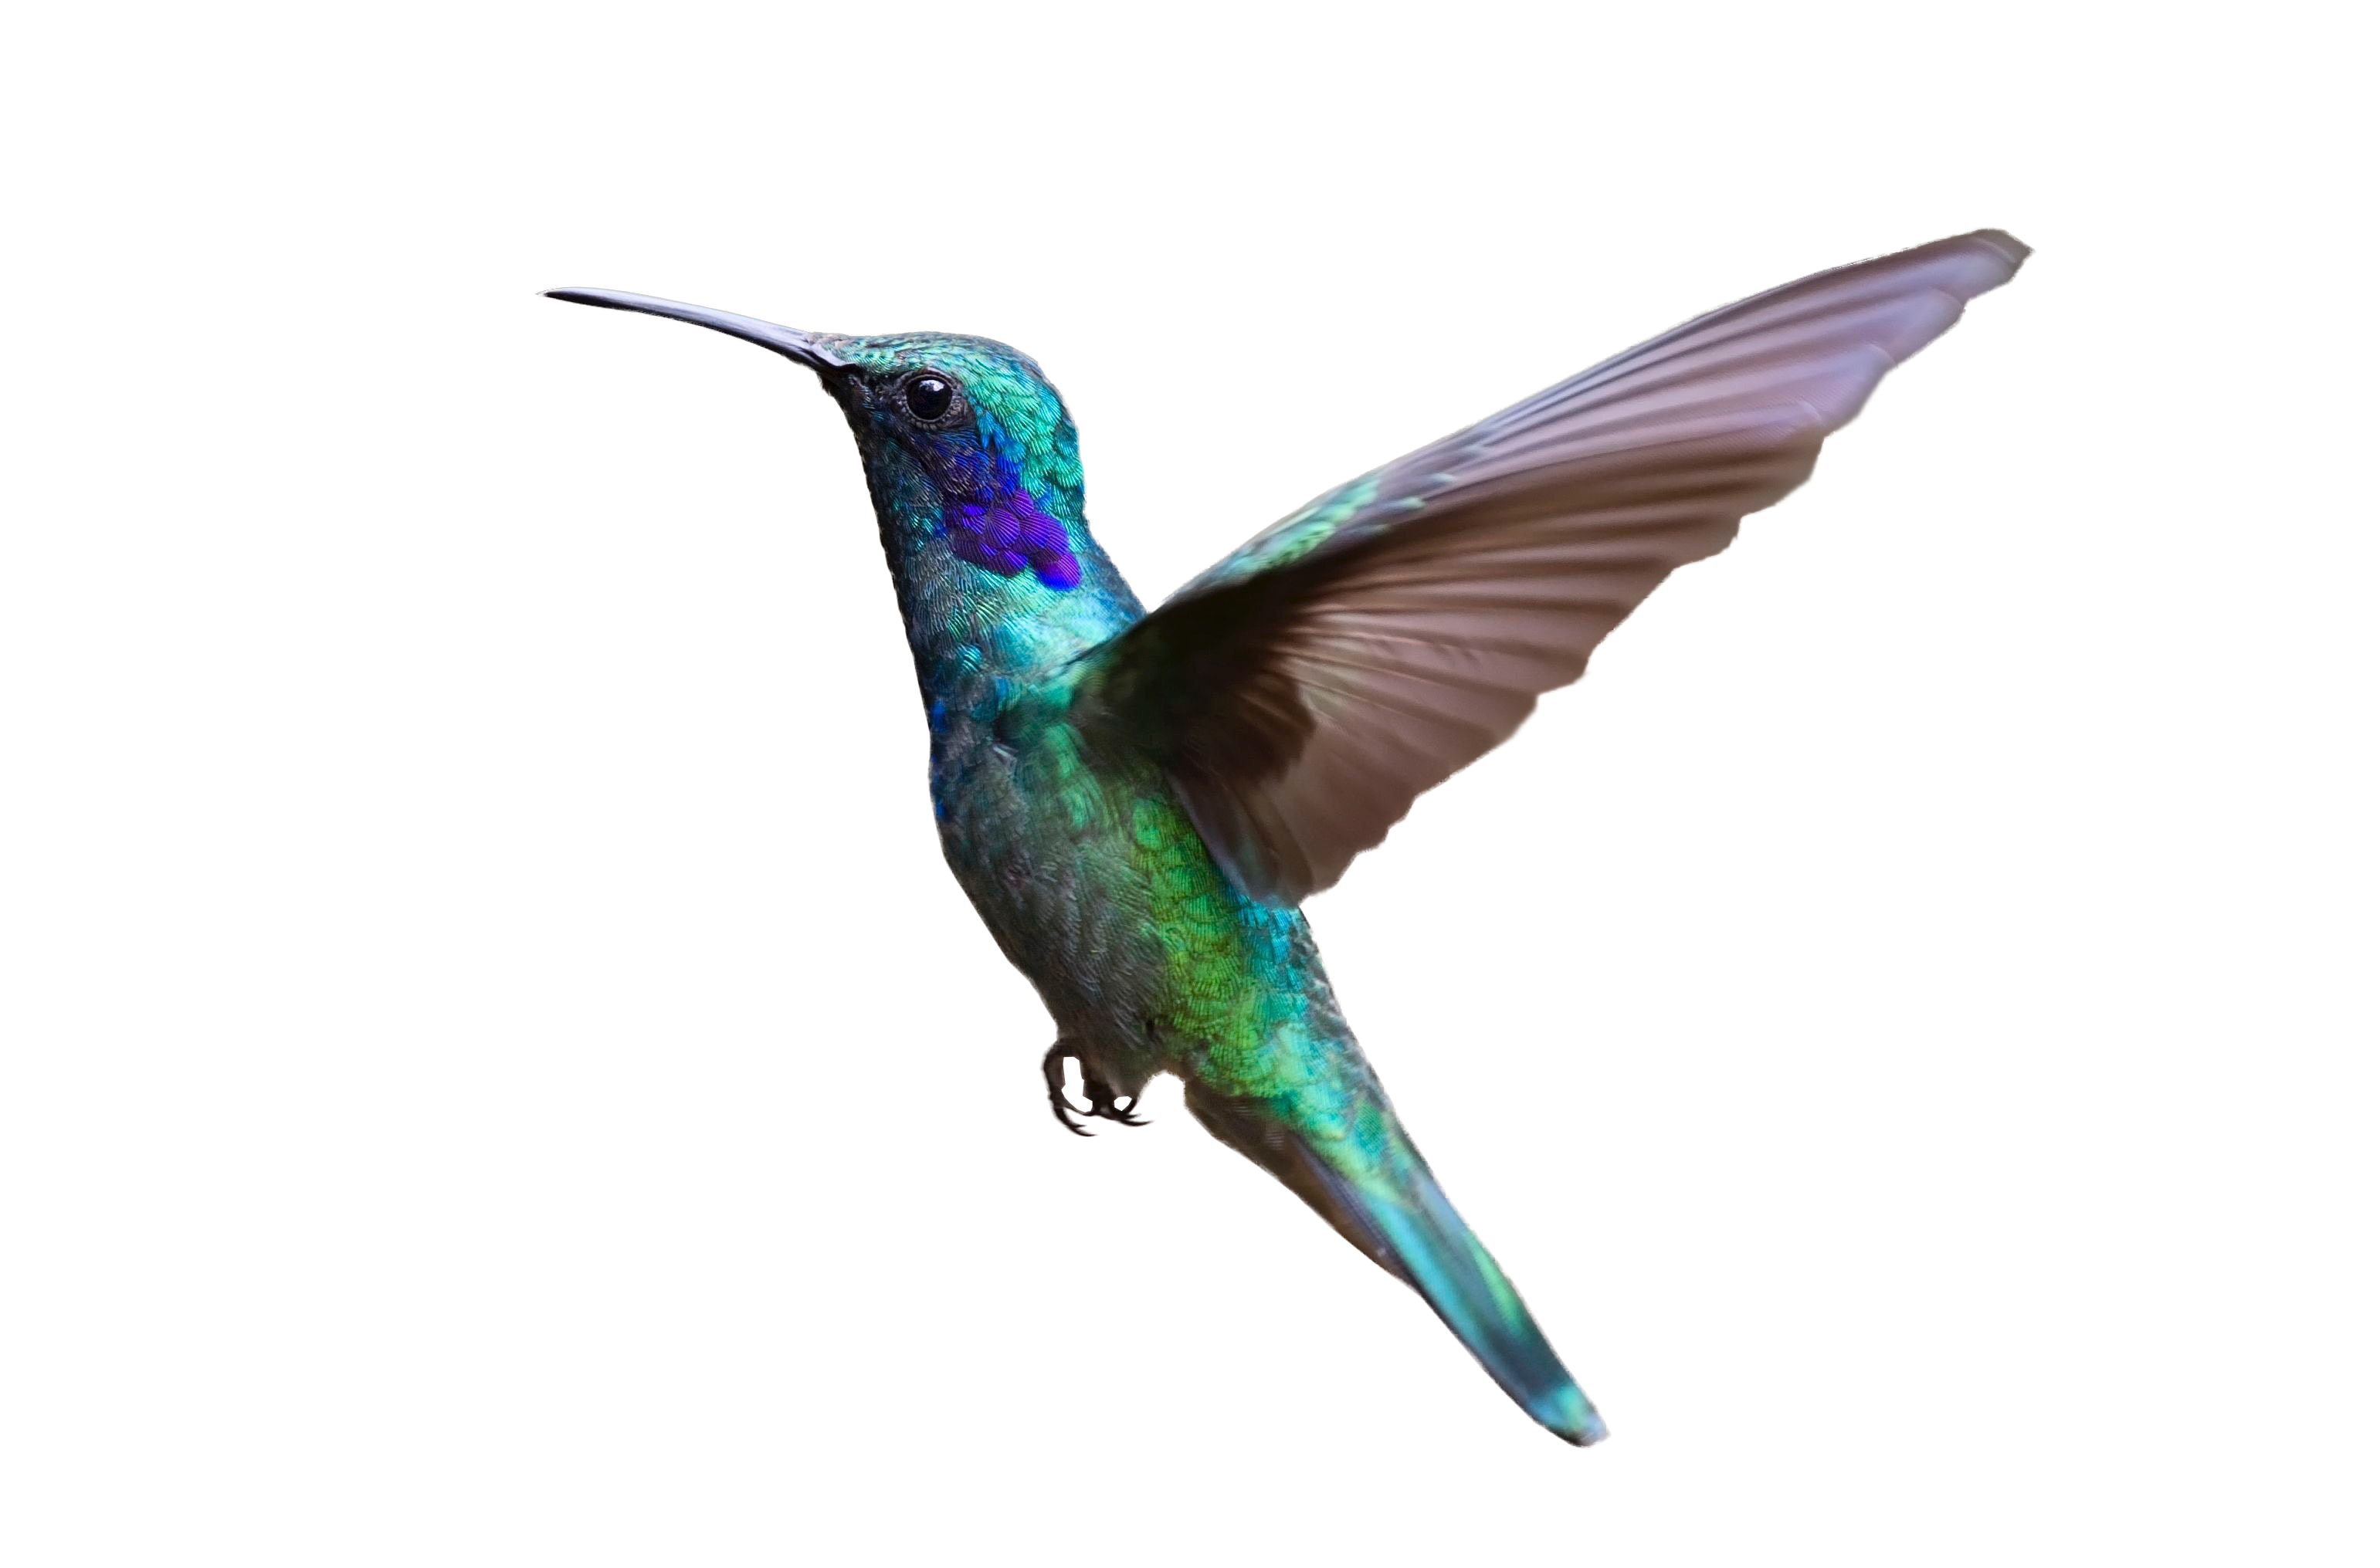 colorful hummingbird flying png image purepng #36726